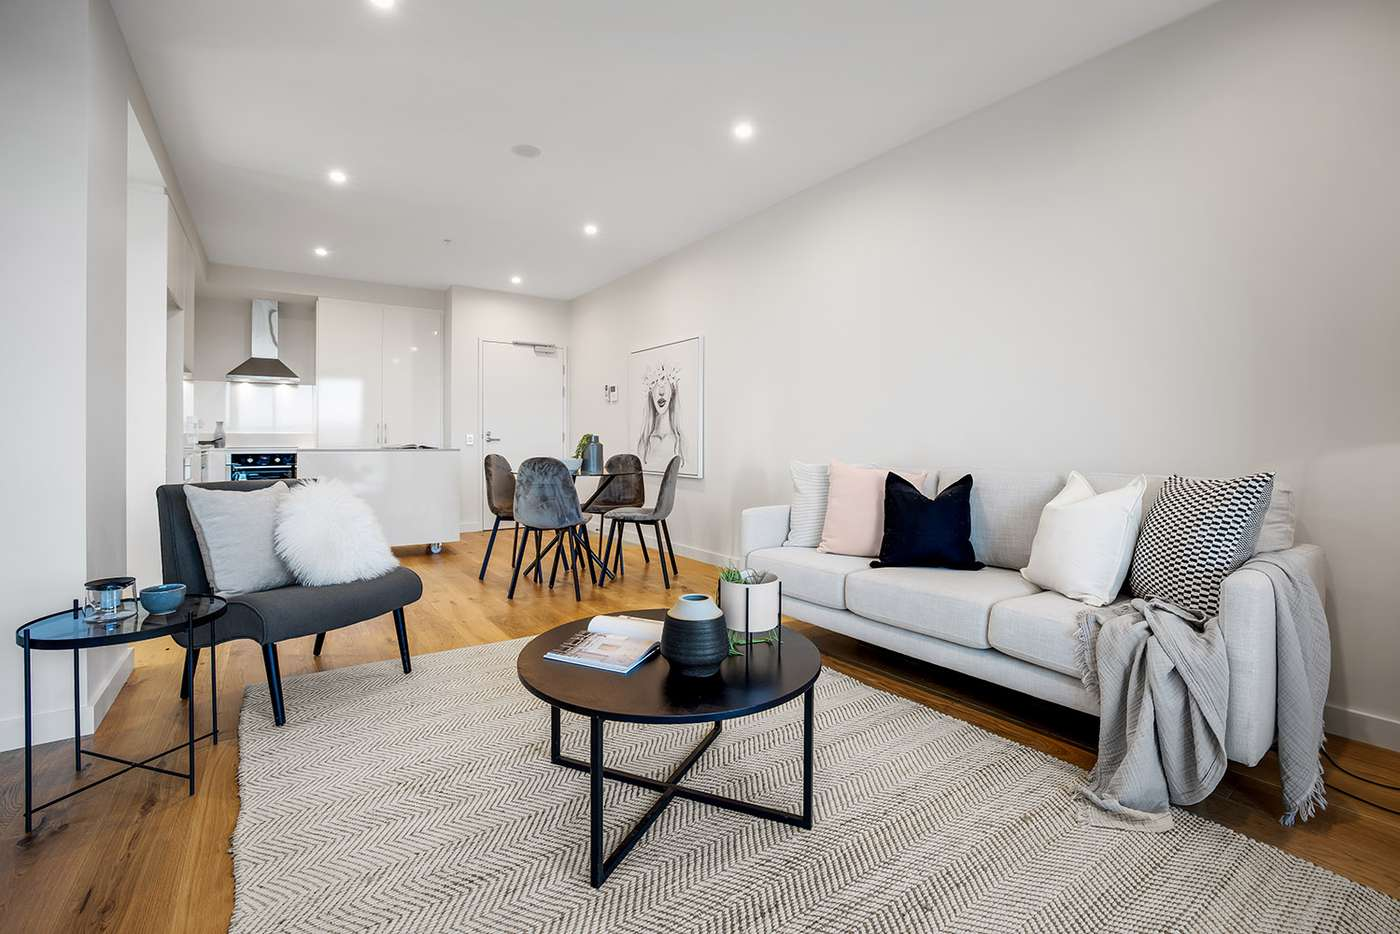 Seventh view of Homely apartment listing, 1301/297 Pirie Street, Adelaide SA 5000